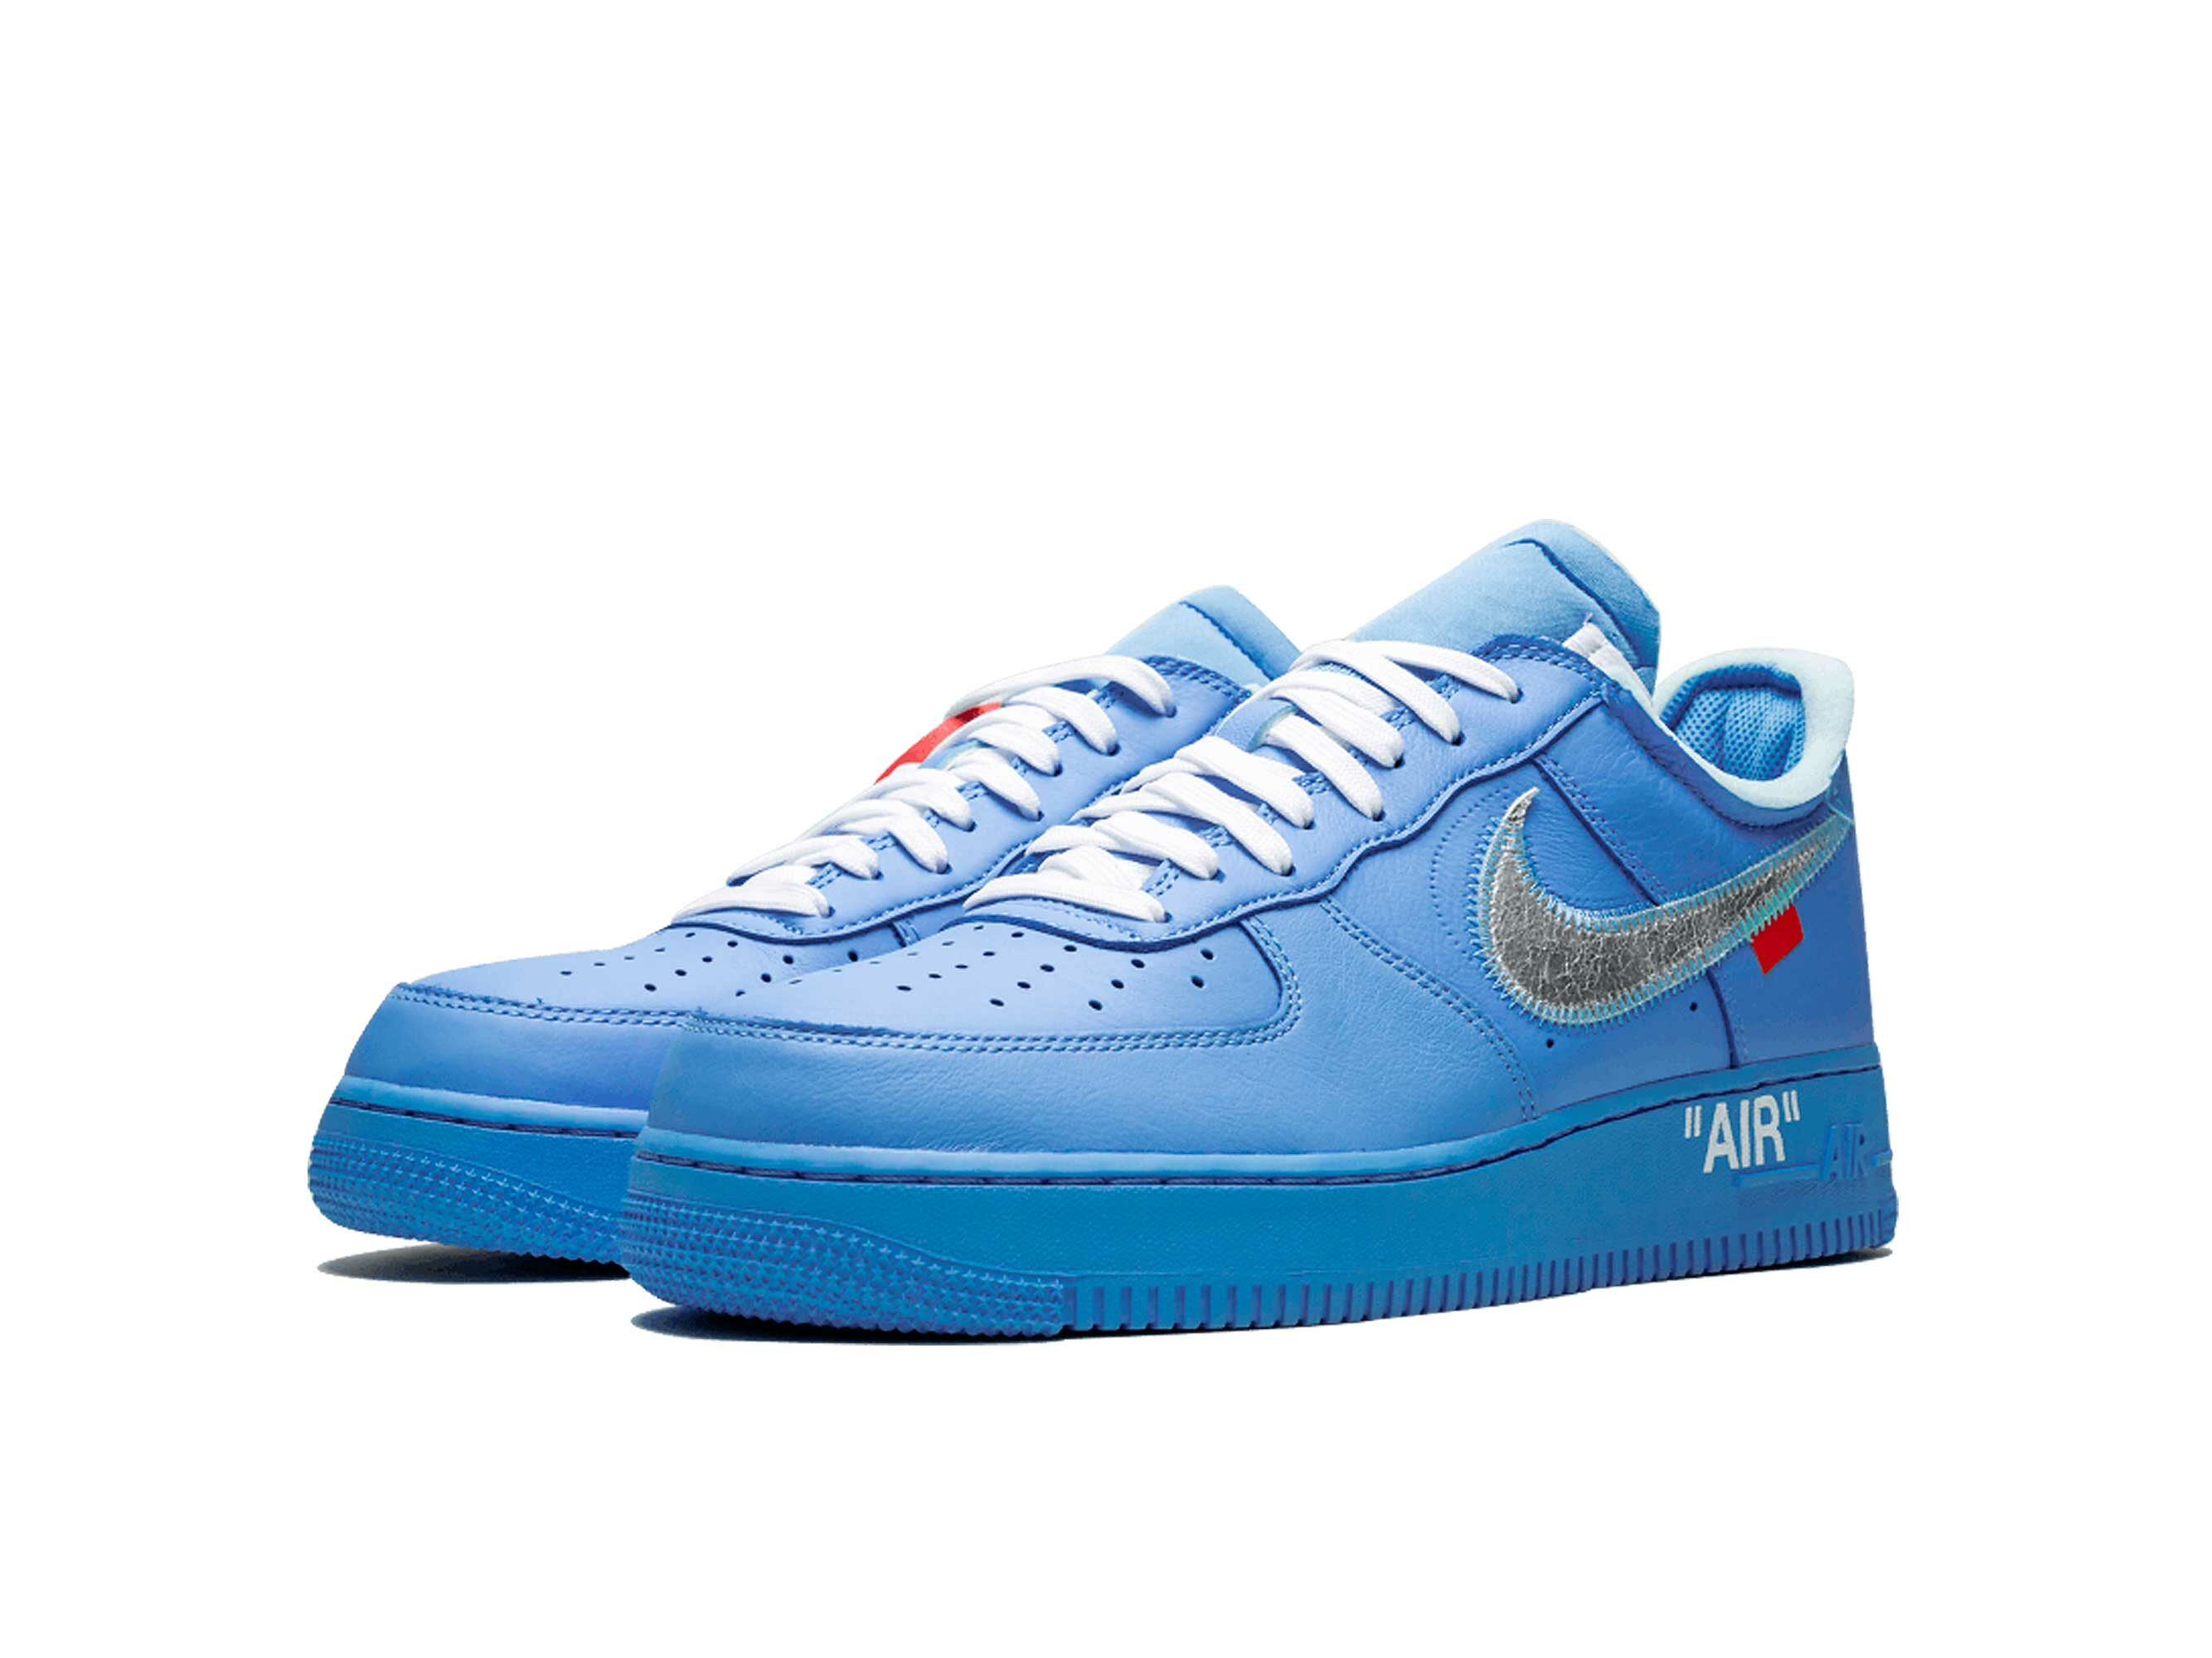 nike air force 1 low mca off white ci1173_400 купить